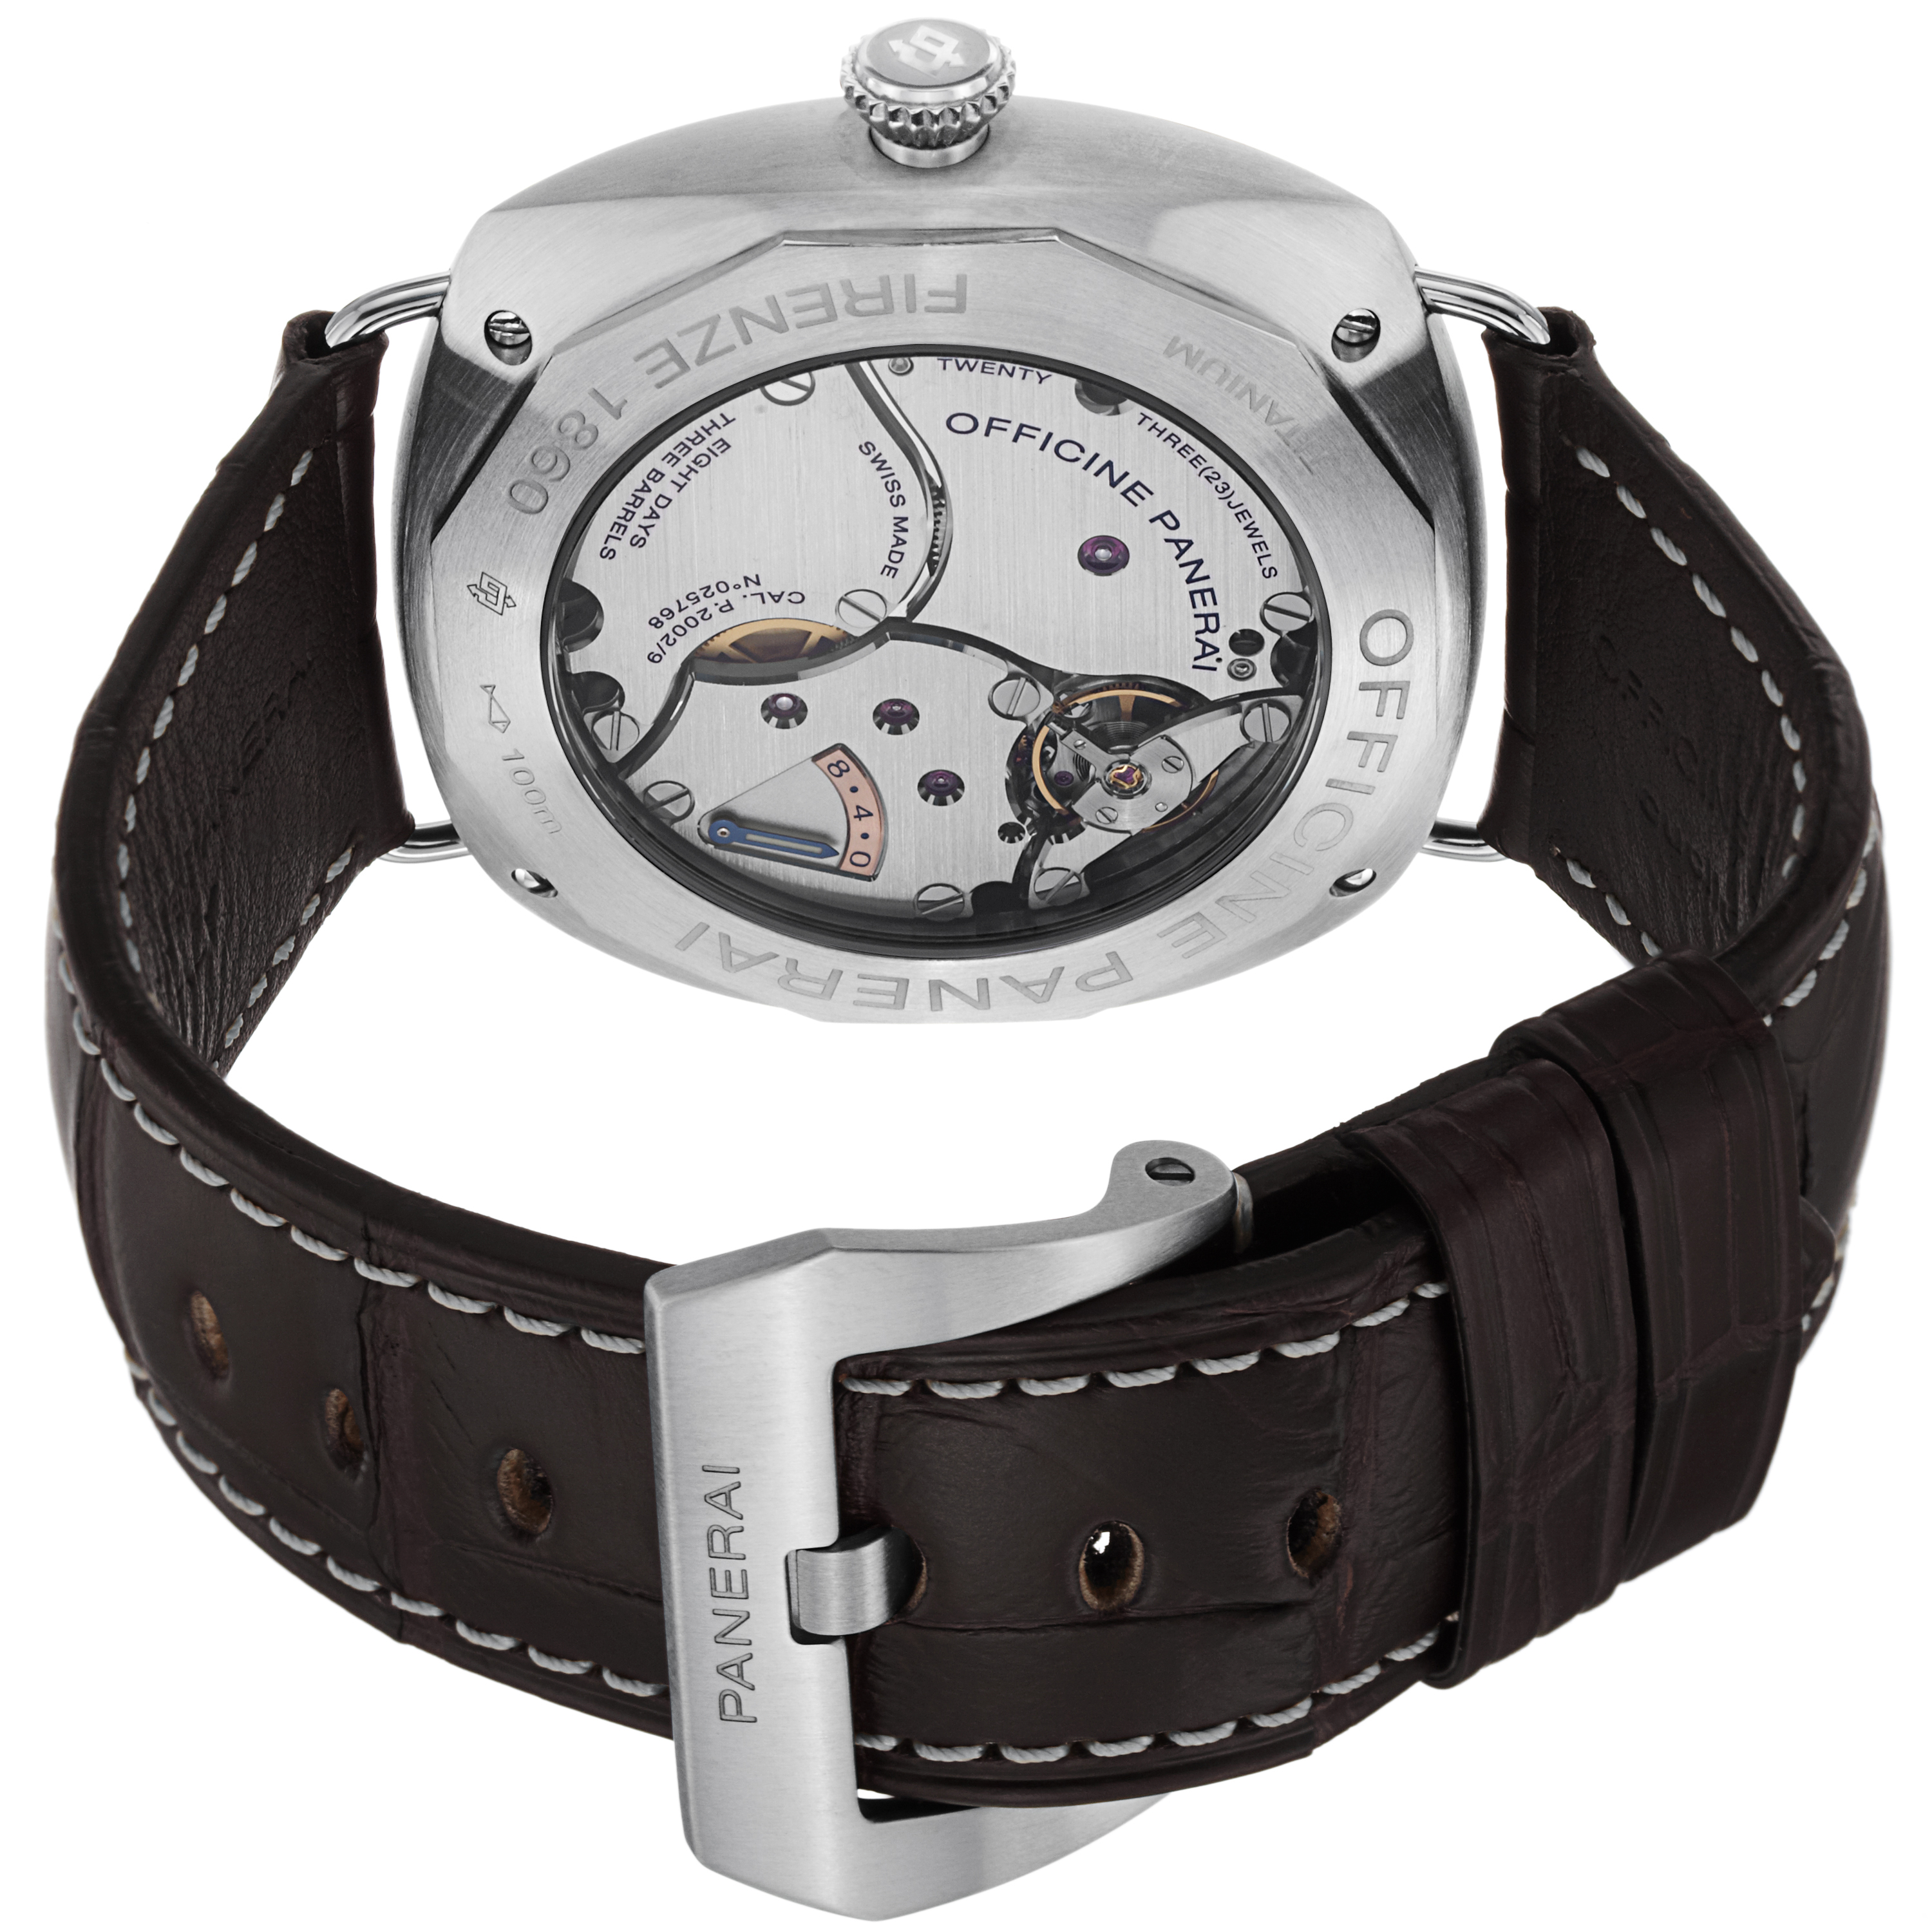 Panerai Historic Collection Men's Watch Model PAM00346 Thumbnail 2